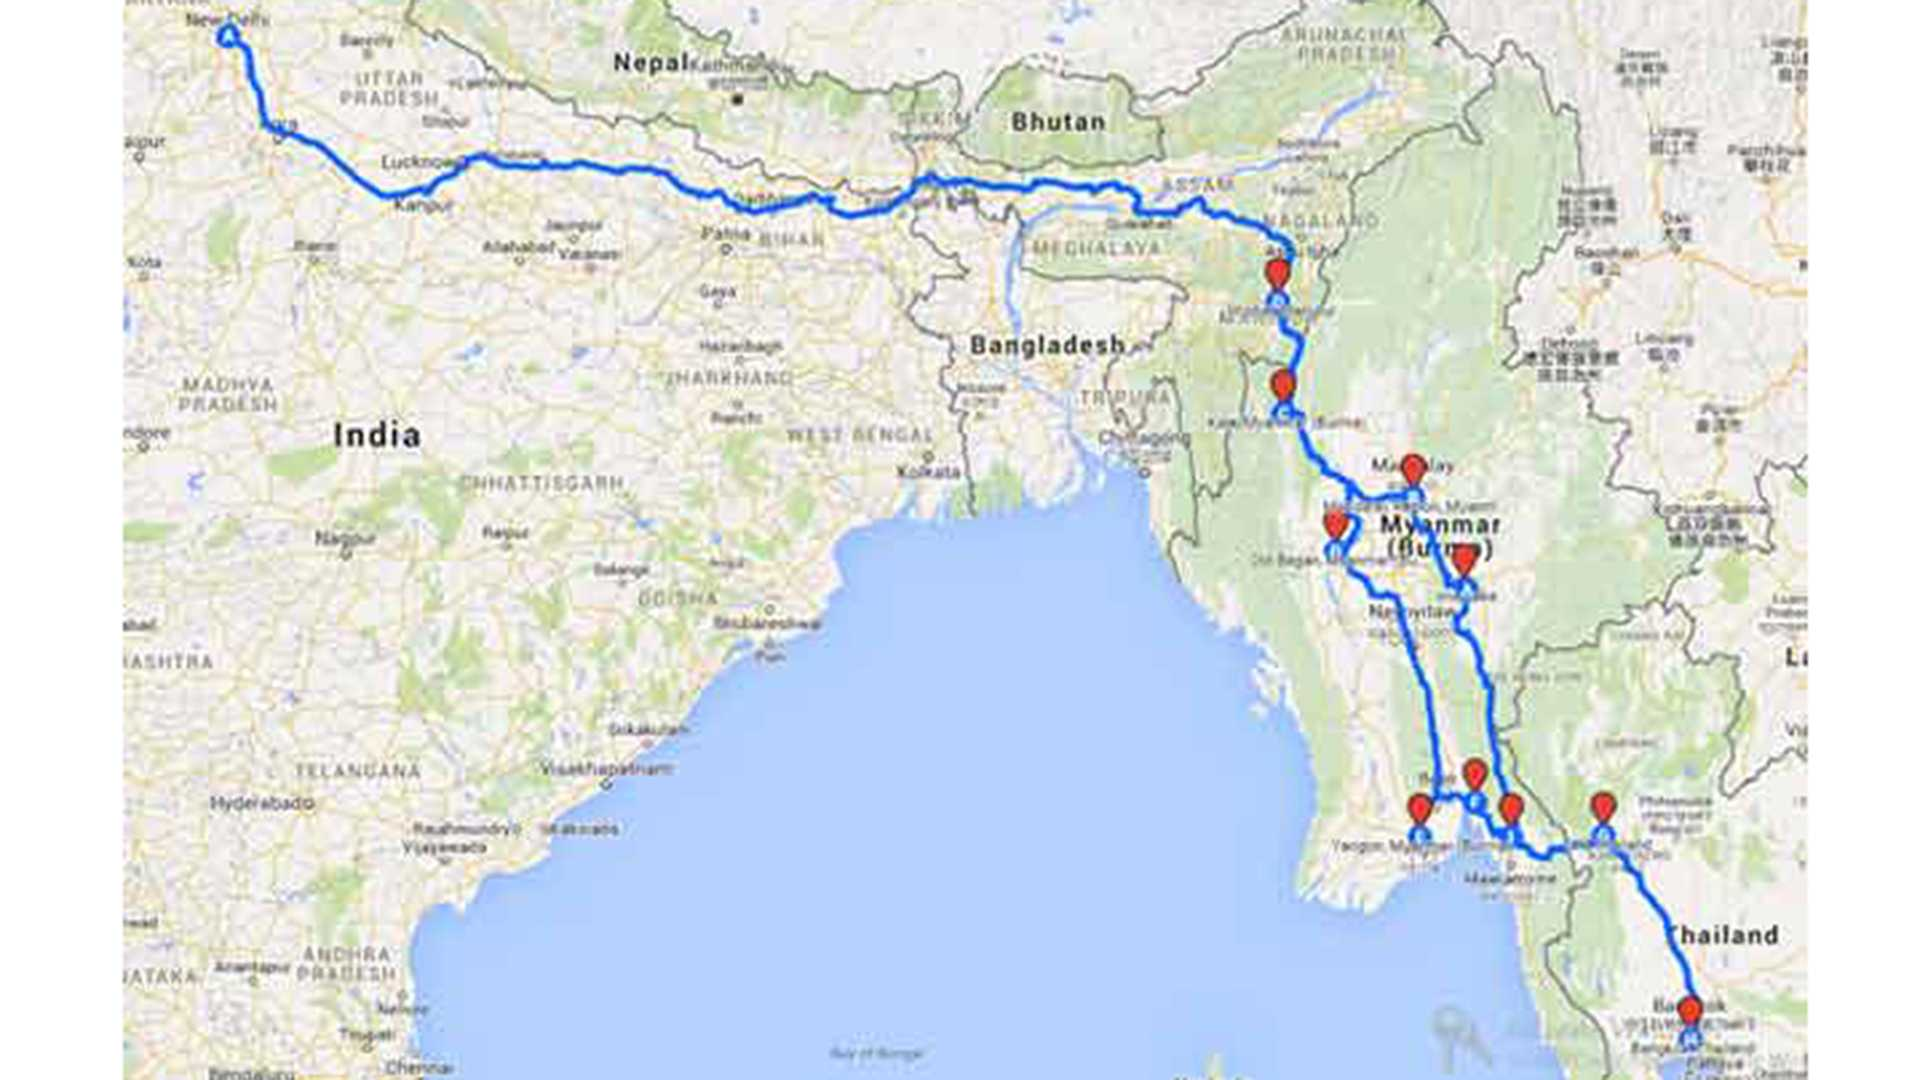 India to Thailand road trip